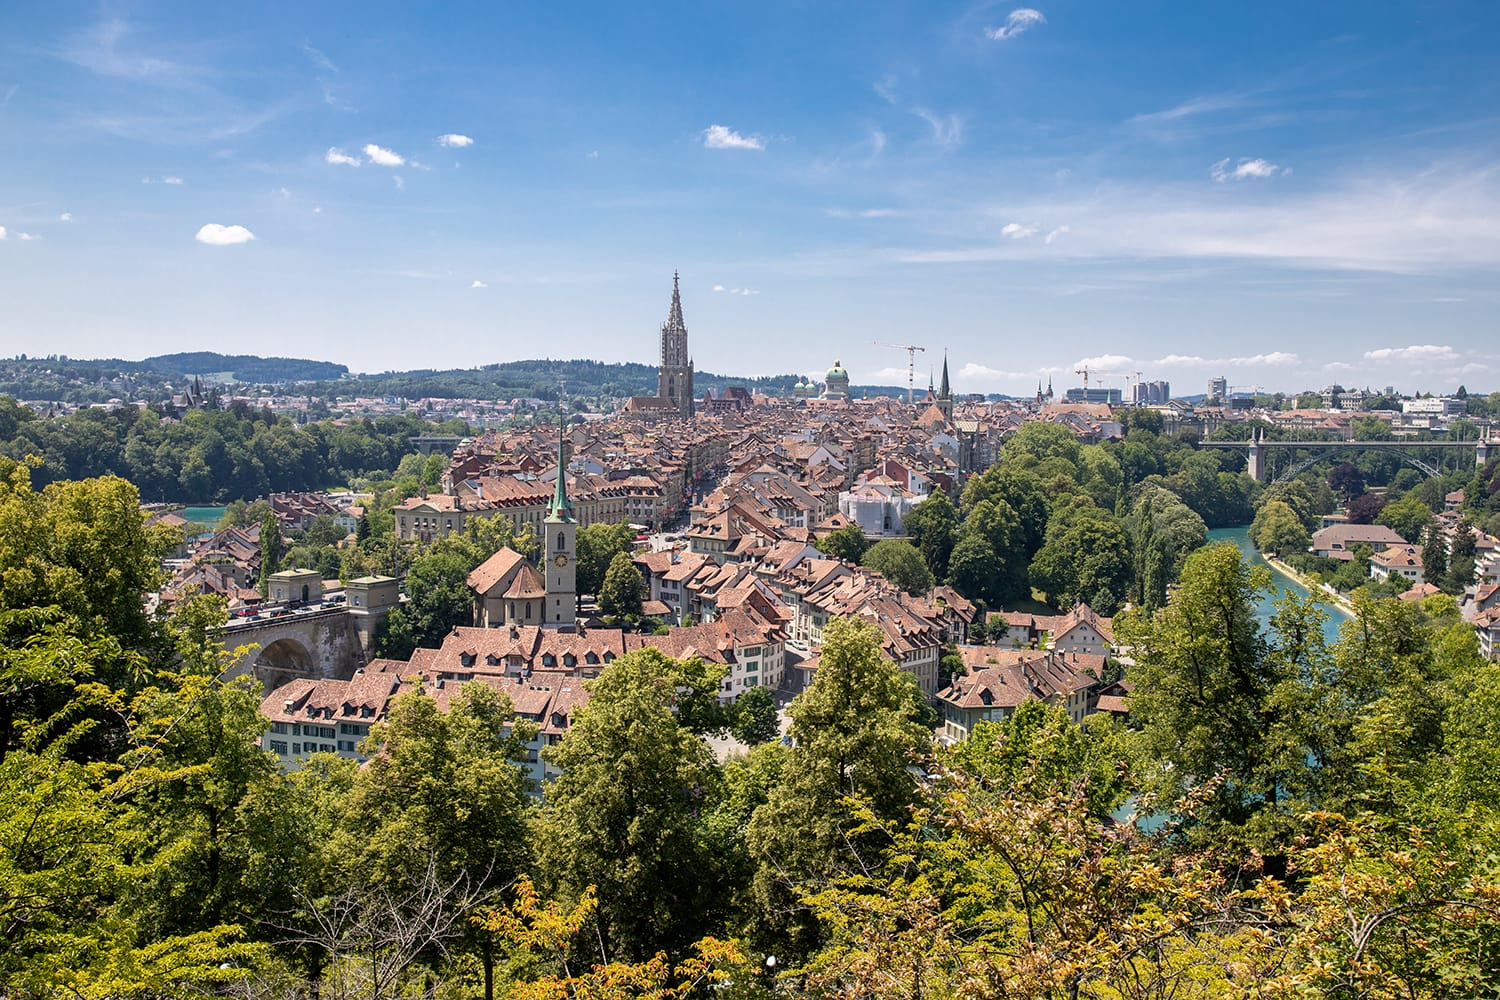 Panorama view of Bern old town from rose garden, Switzerland